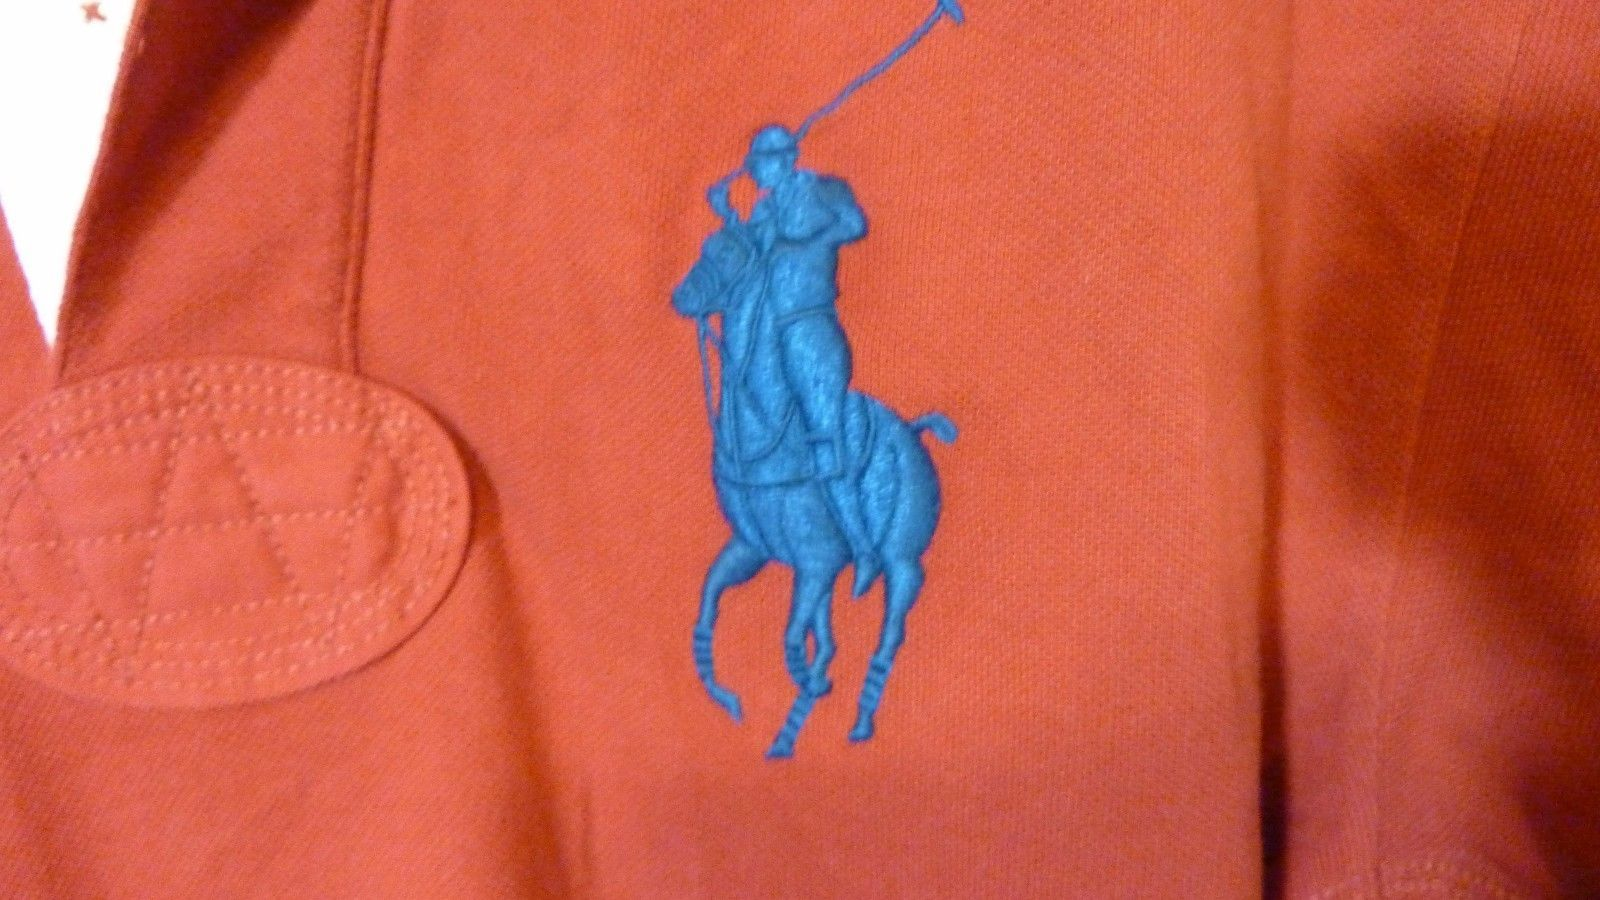 Lauren County 30 Items Similar Ralph And Jockey Polo Ridersamp; Red P8wXkn0O